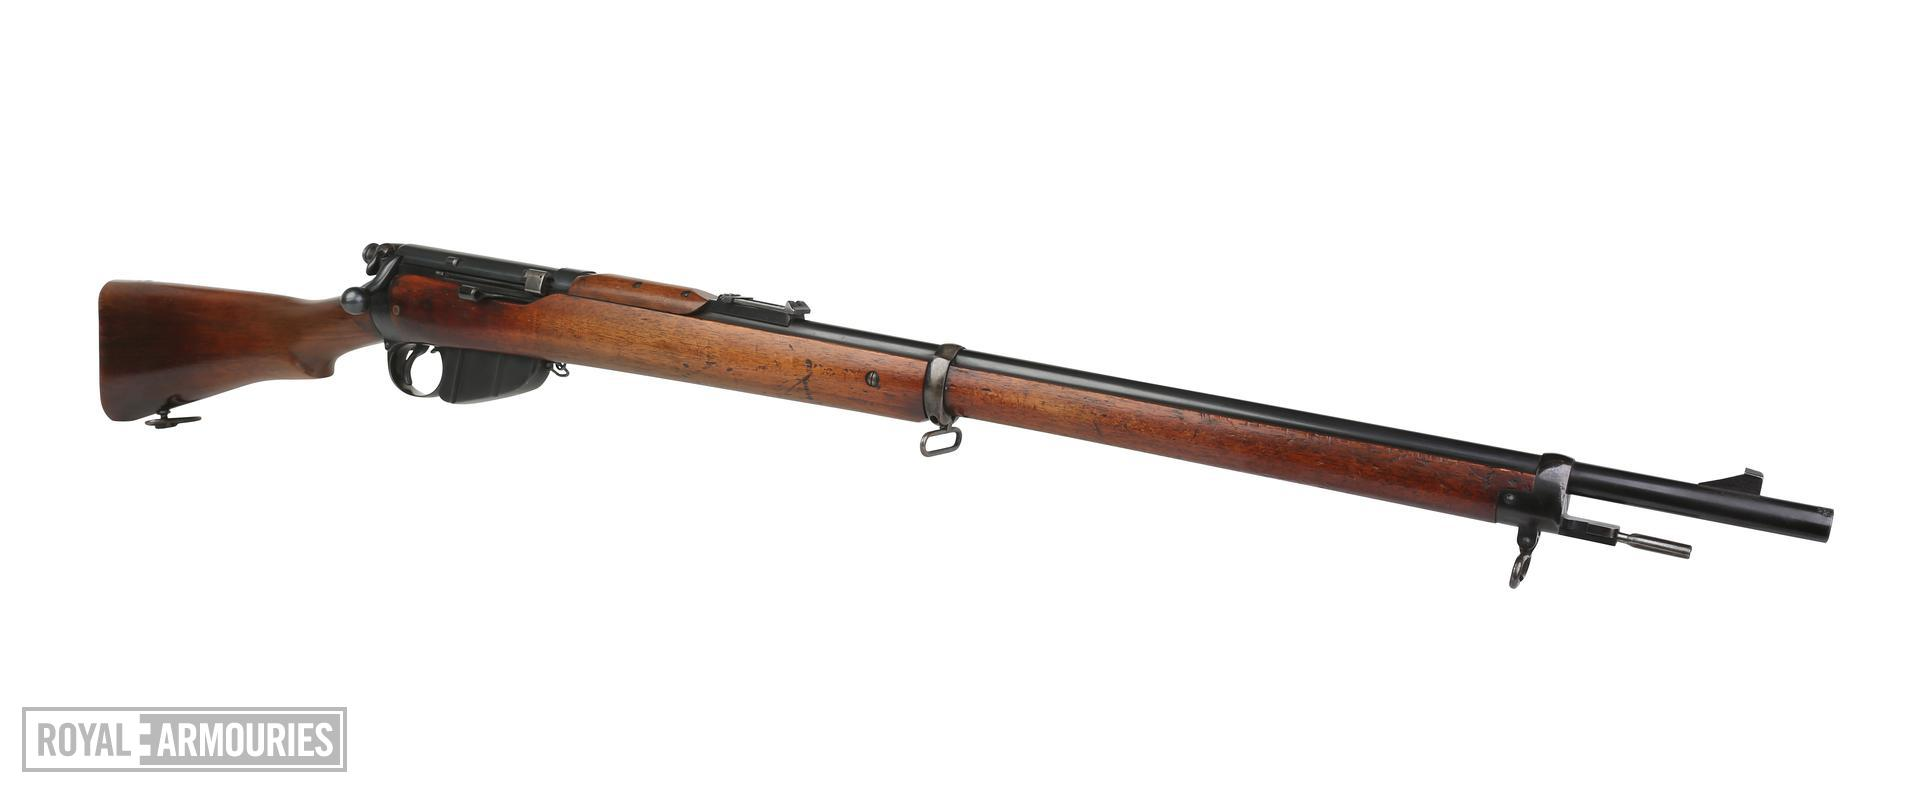 Centrefire bolt-action magazine military rifle. Lee Enfield Mk. I rifle, serial number 1. PR.5711